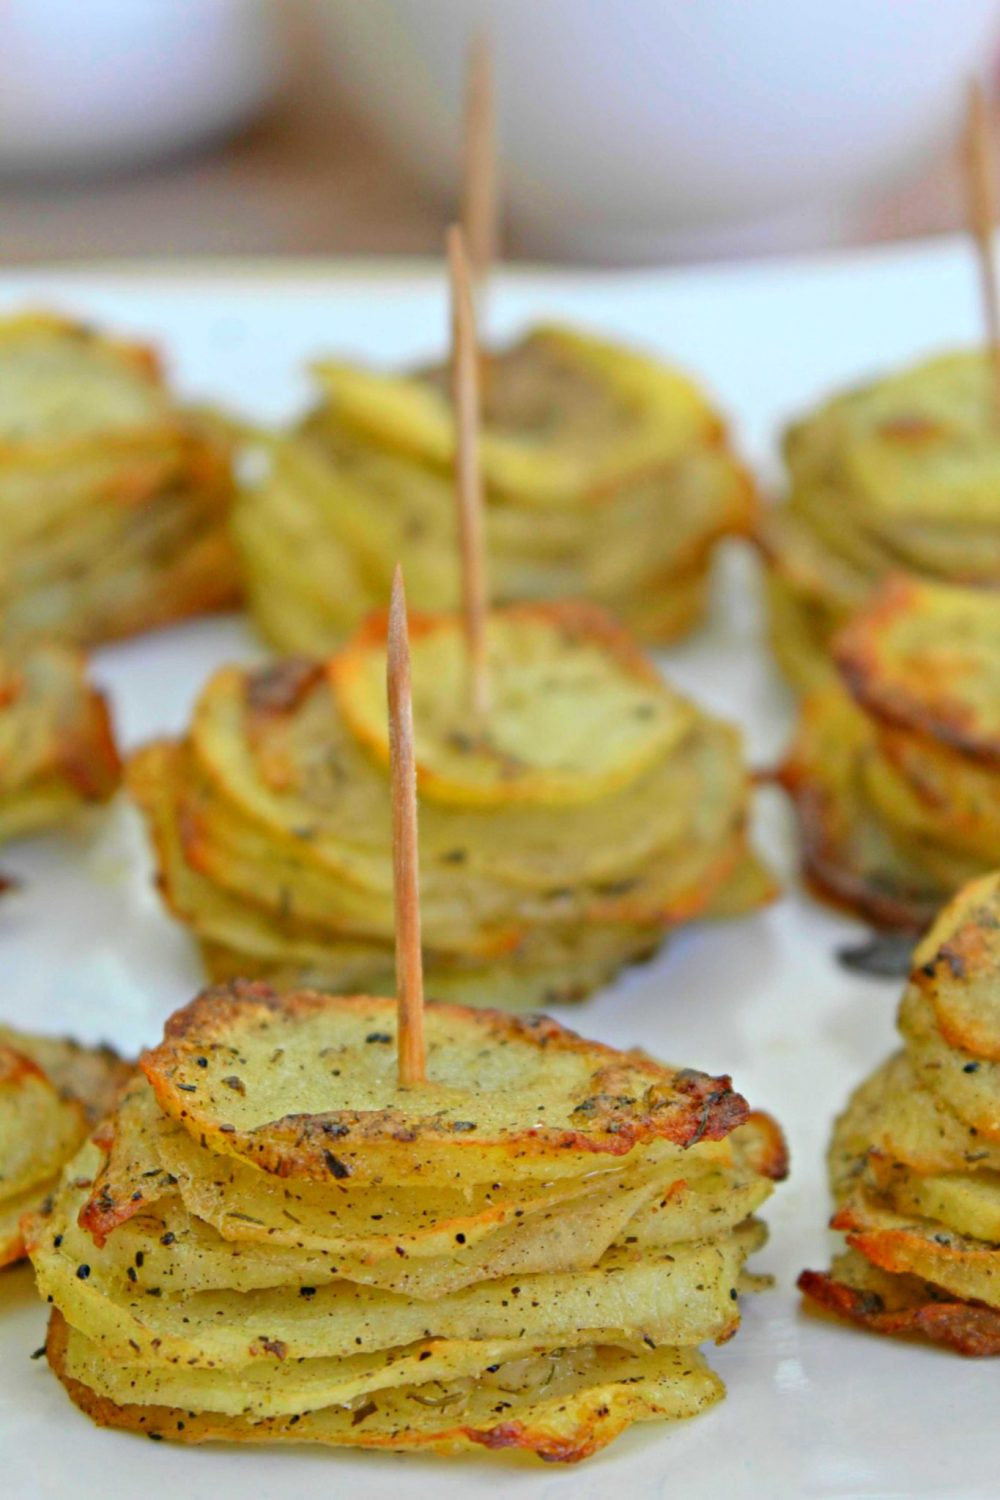 Parmesan potato stacks with garlic and herbs on a white serving plate